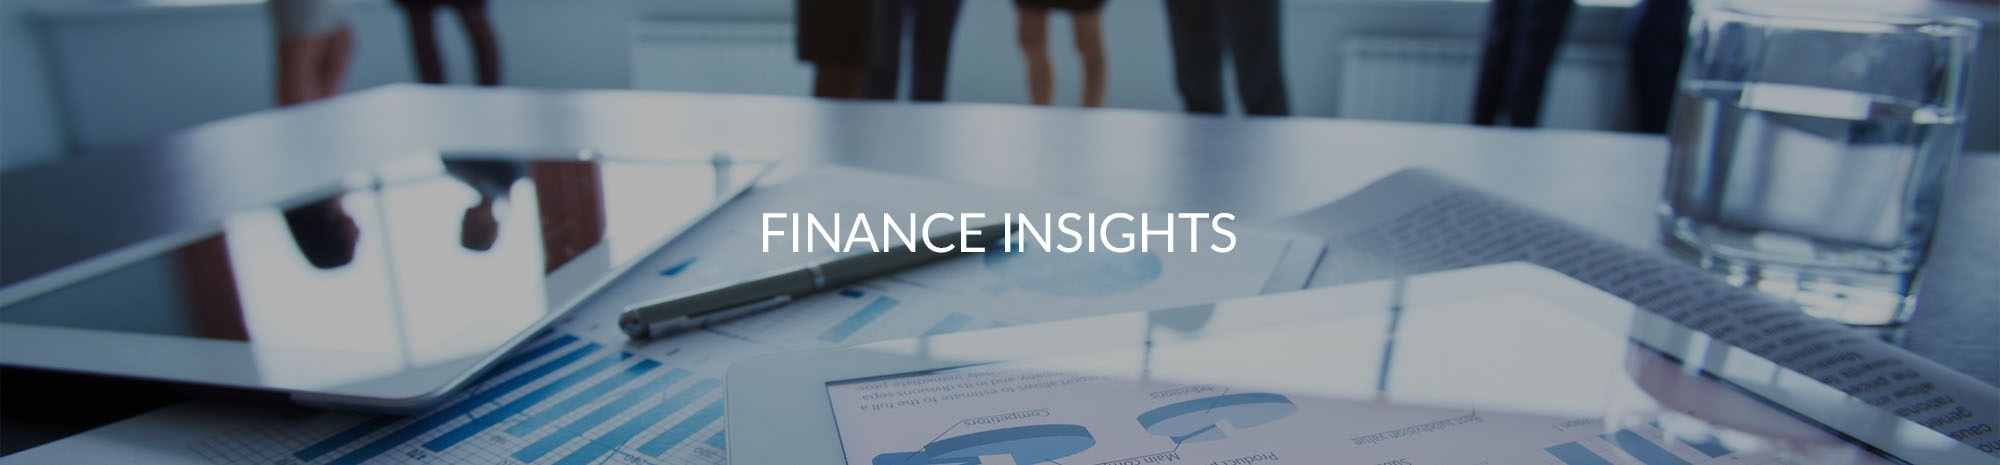 Finance Insights